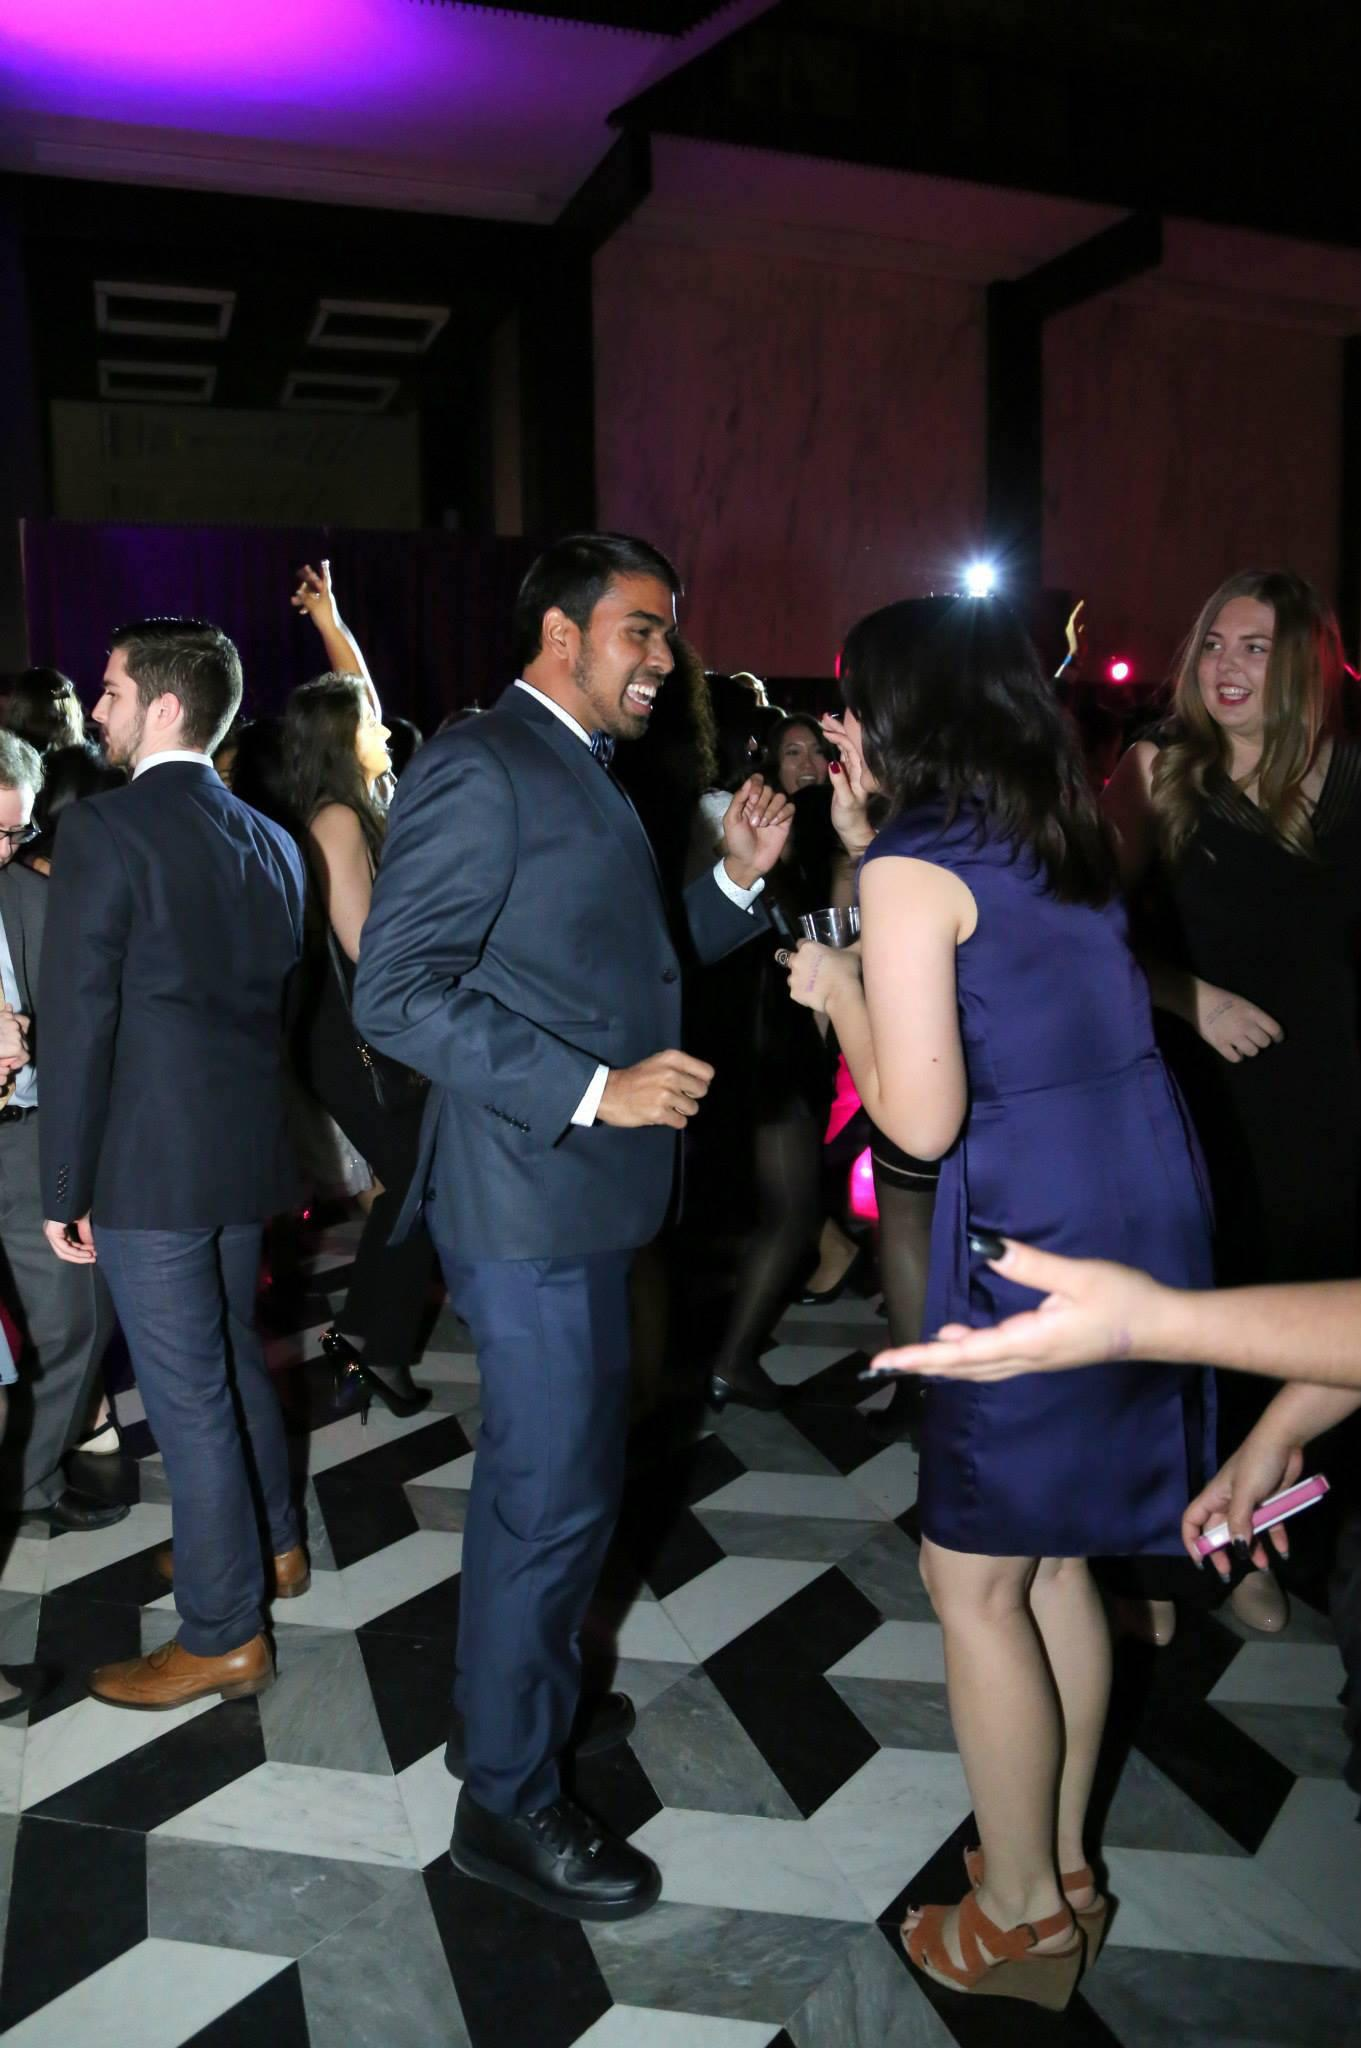 The 27th Annual Violet Ball, which was on Feb. 27, 2016 brought the NYU community for a night of music and fun.